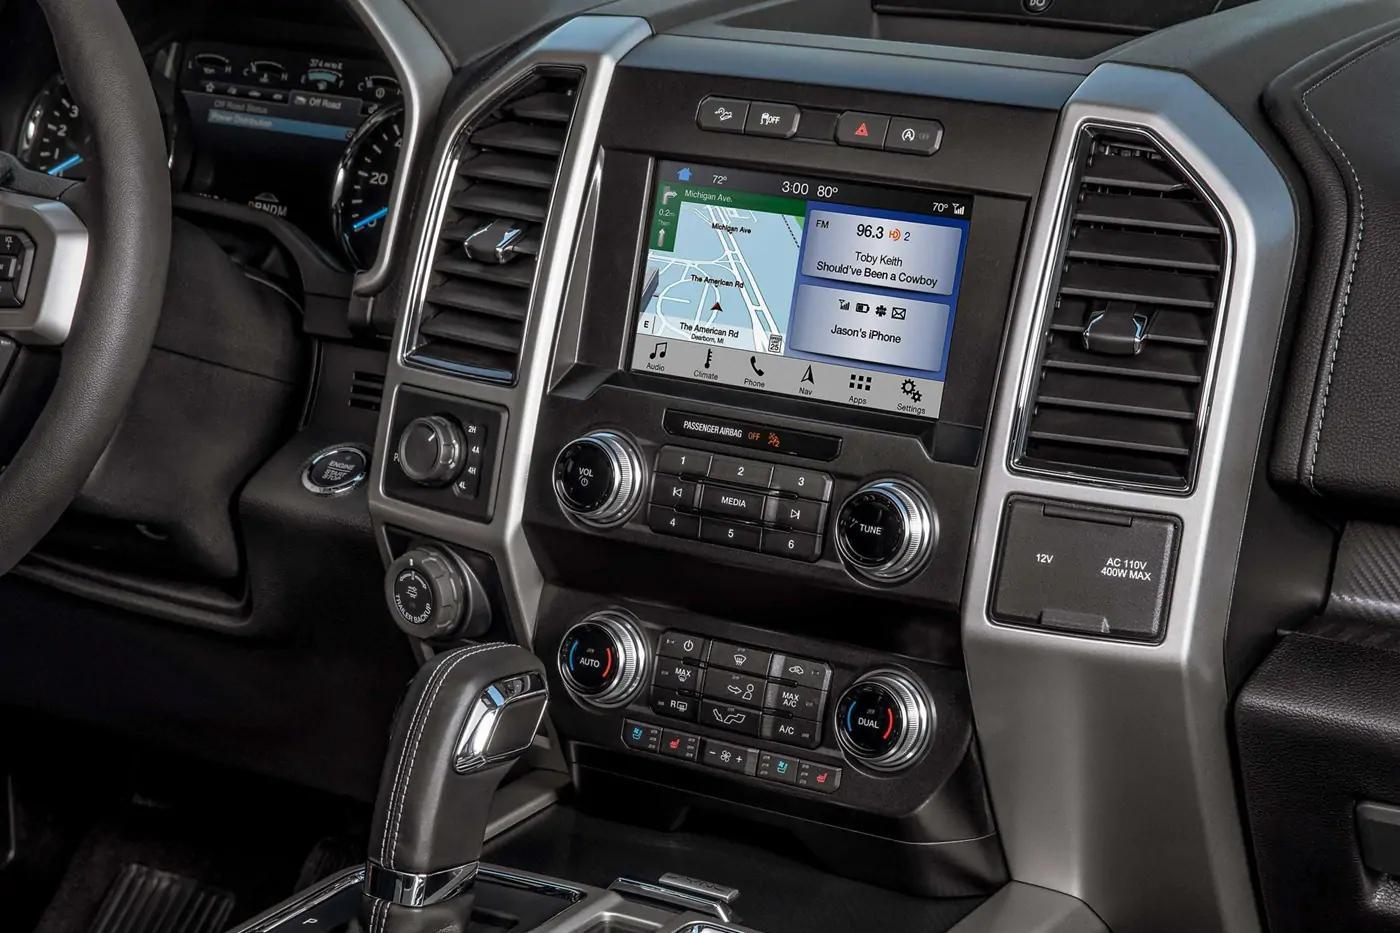 Ford F-150 center console showing navigation through the city of Guelph, Ontario